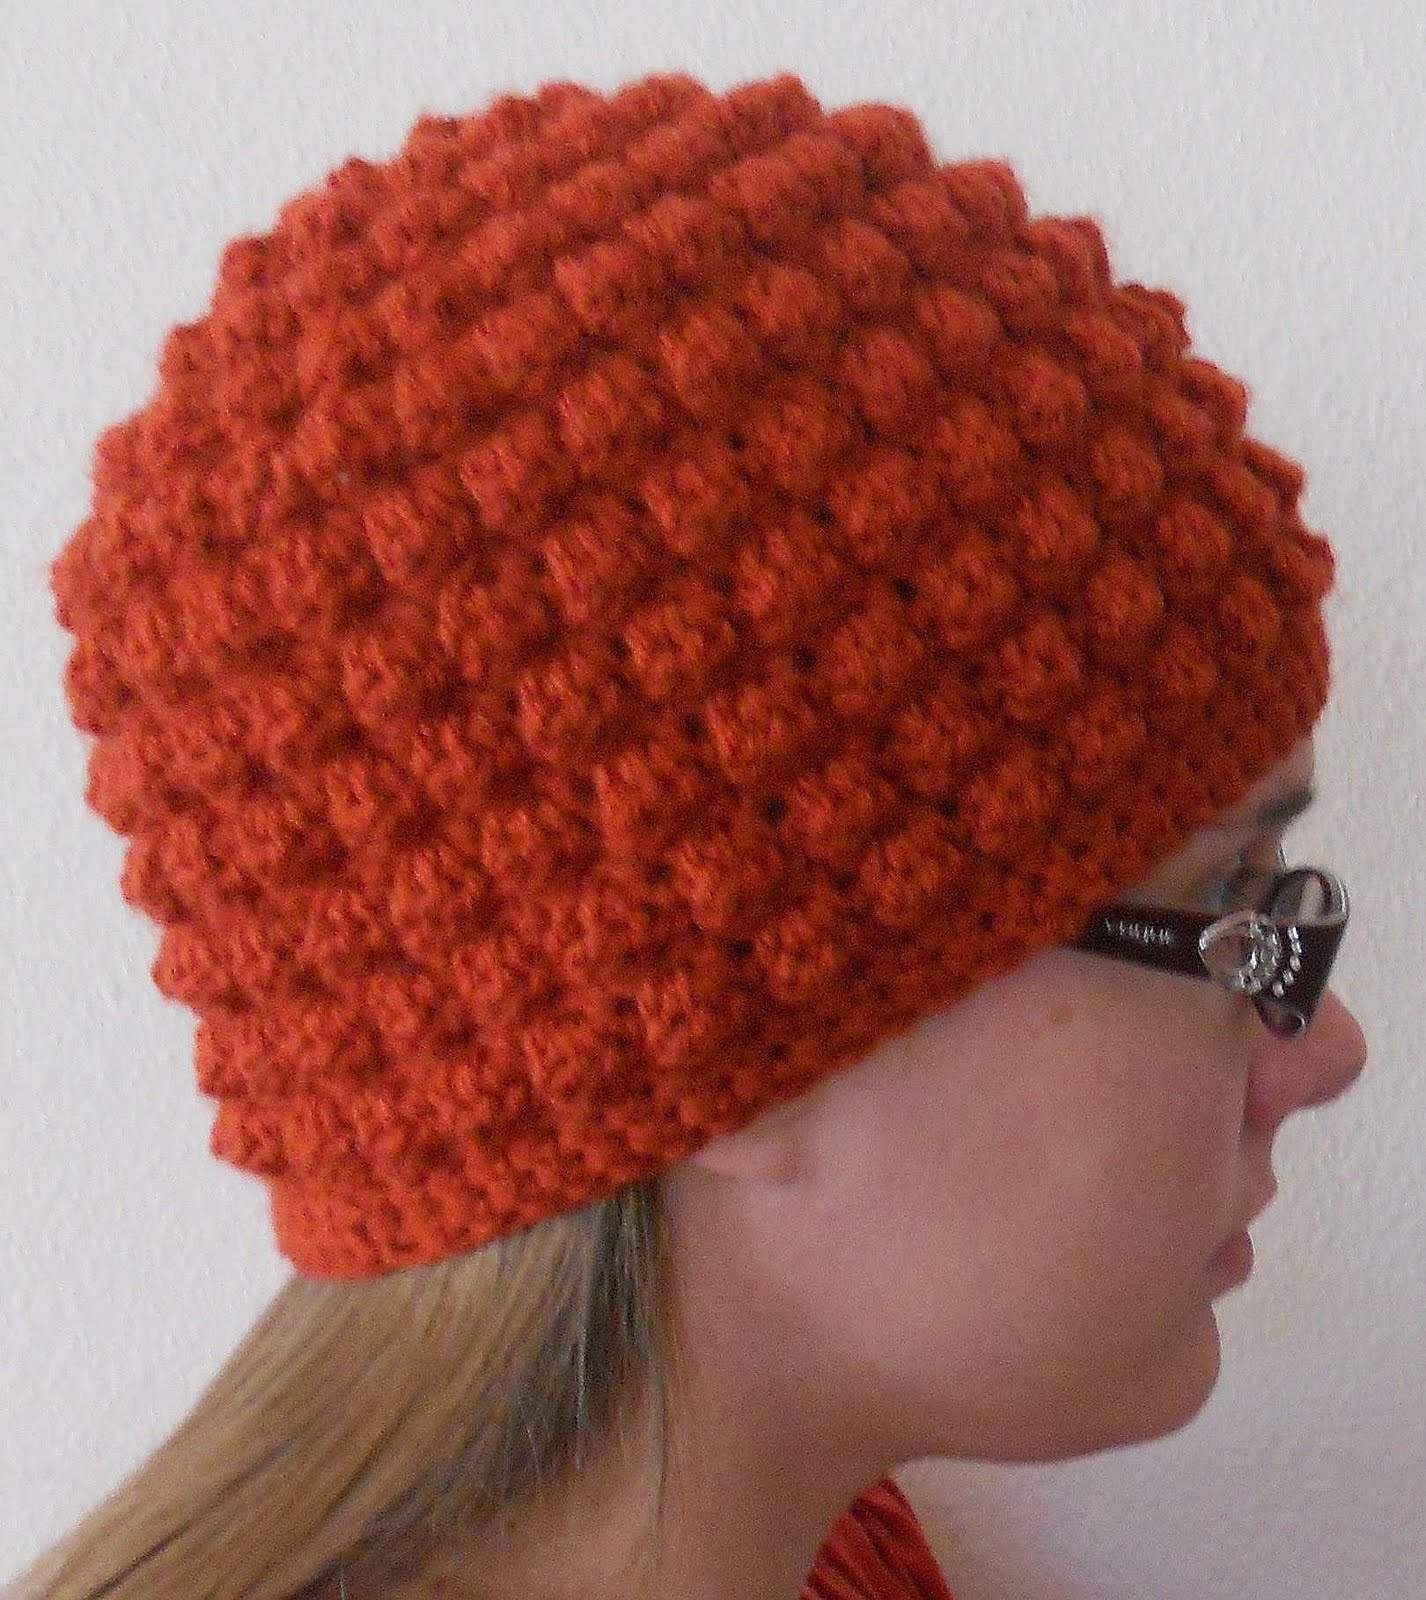 Free Crochet Pattern For Ladies Beanie Hat : Crochet Hat Bobble Images & Pictures - Becuo